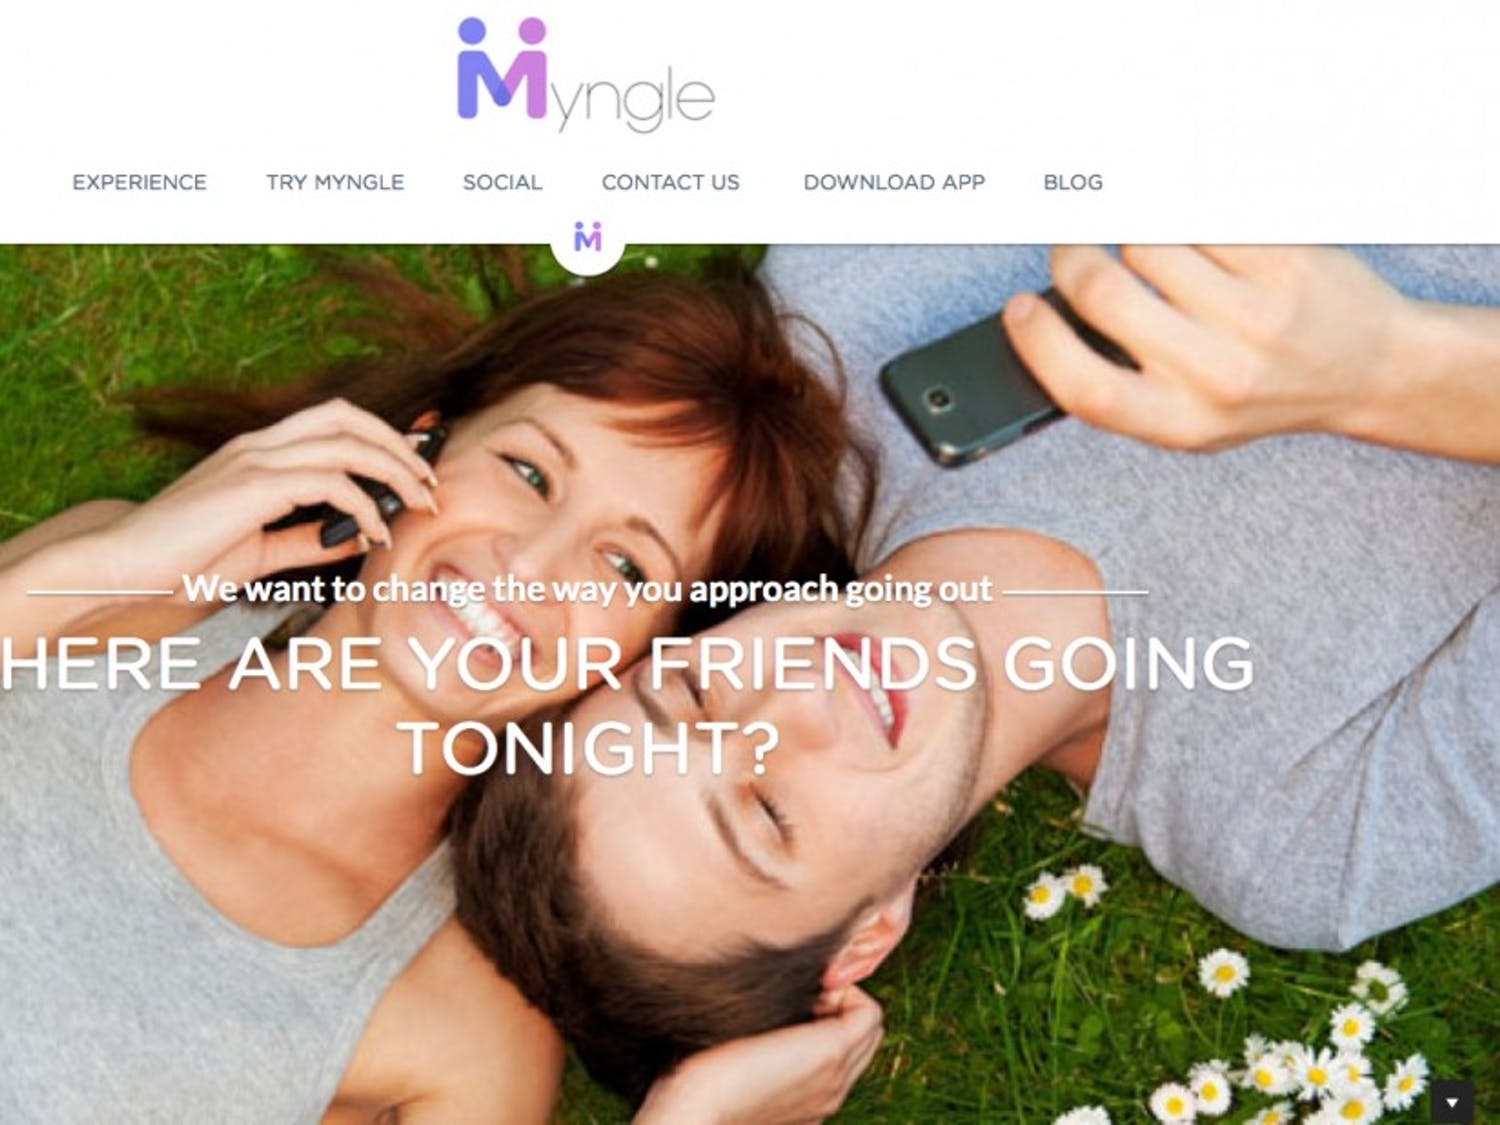 Myngle allows people to track where their friends are going out.